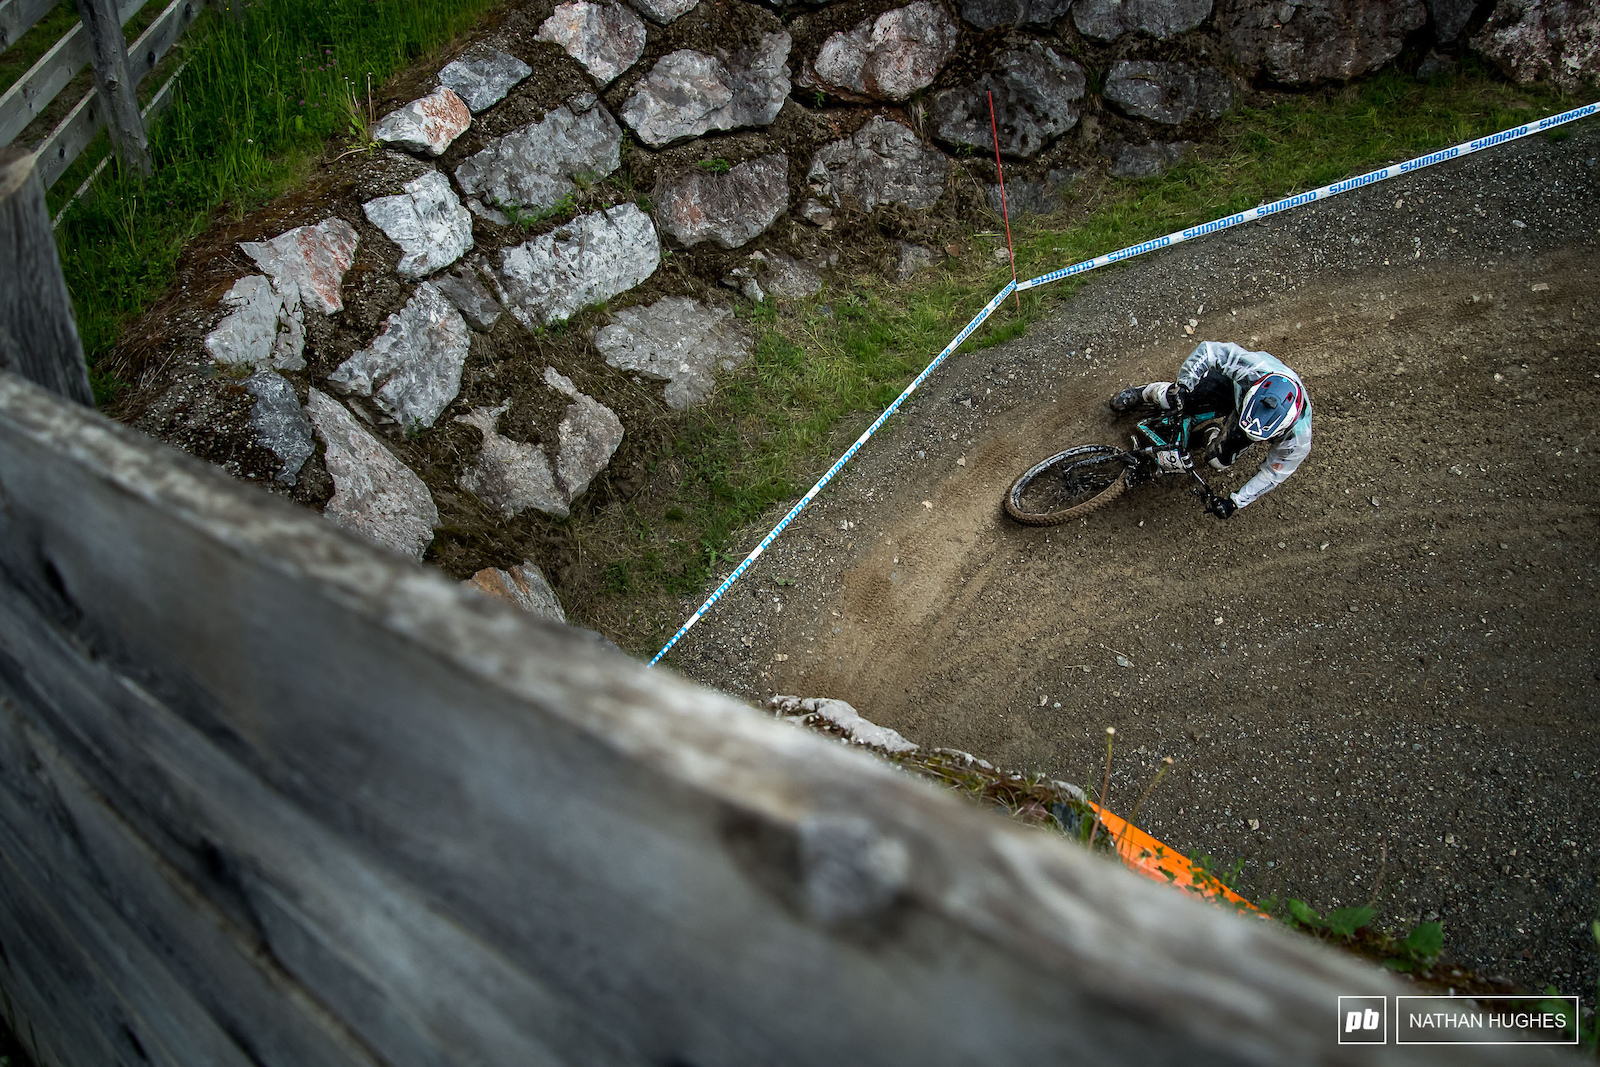 Luke Meier-Smith feeling the G s into another tunnel.